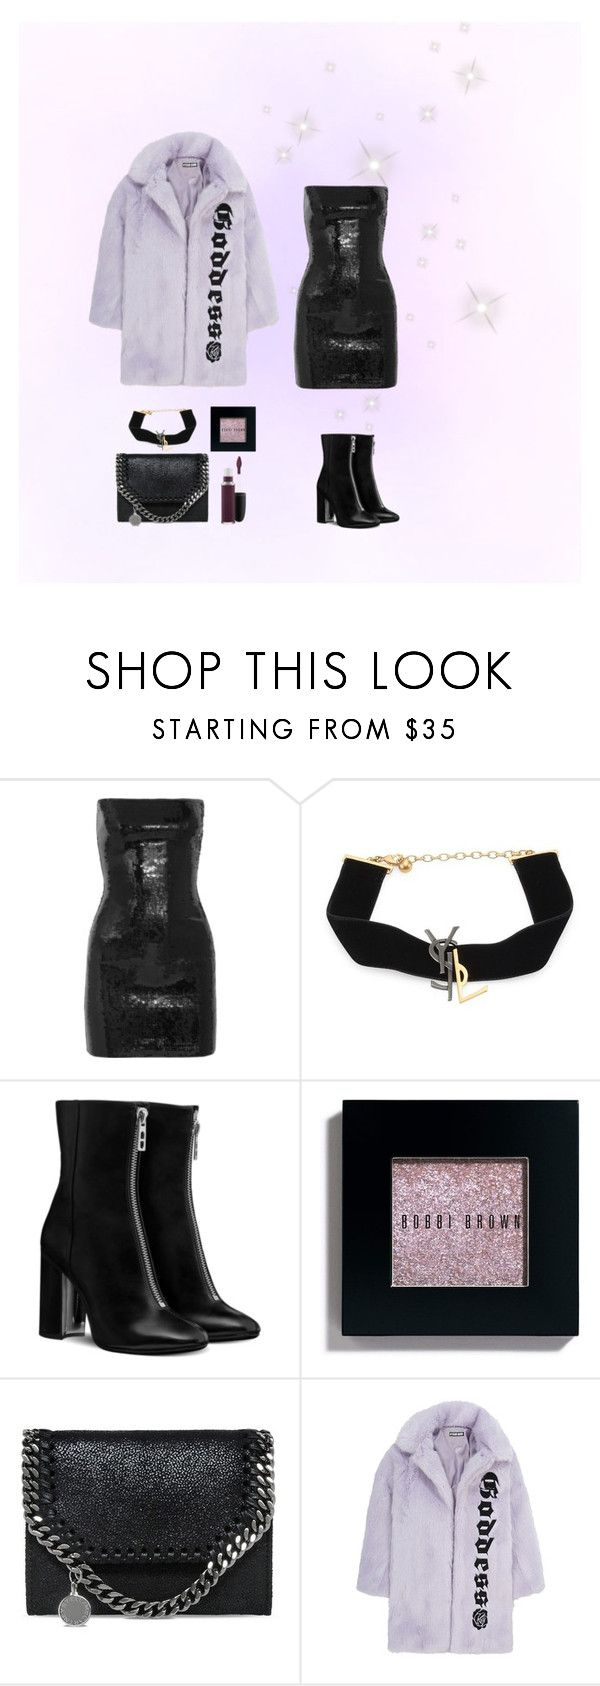 """Glitter Night Out"" by girlyprincessglam ❤ liked on Polyvore featuring Yves Saint Laurent, Bobbi Brown Cosmetics, STELLA McCARTNEY, Hyein Seo and MAC Cosmetics"